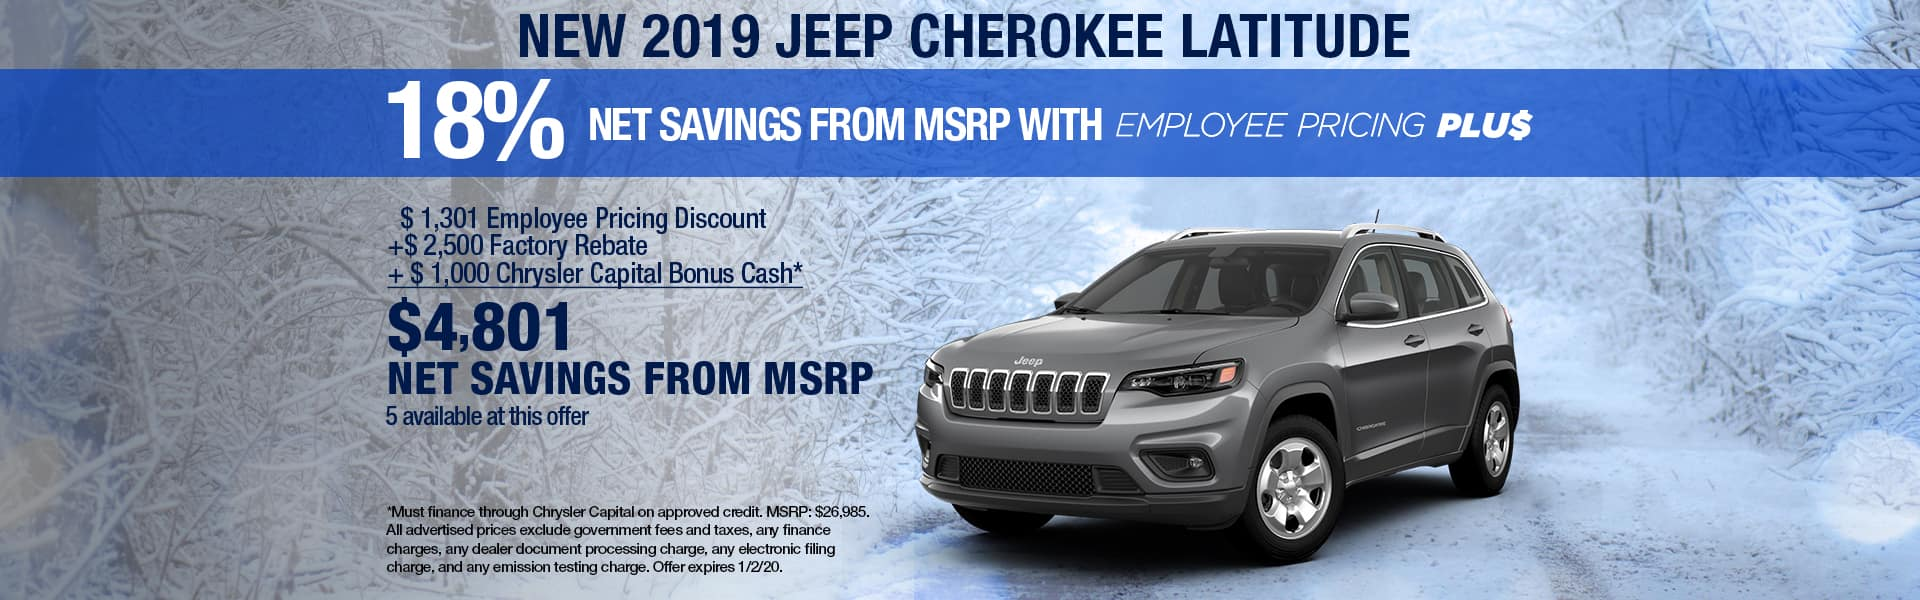 Jeep Dealership San Diego >> Kearny Mesa Chrysler Dodge Jeep Ram New Used Cars Dealer